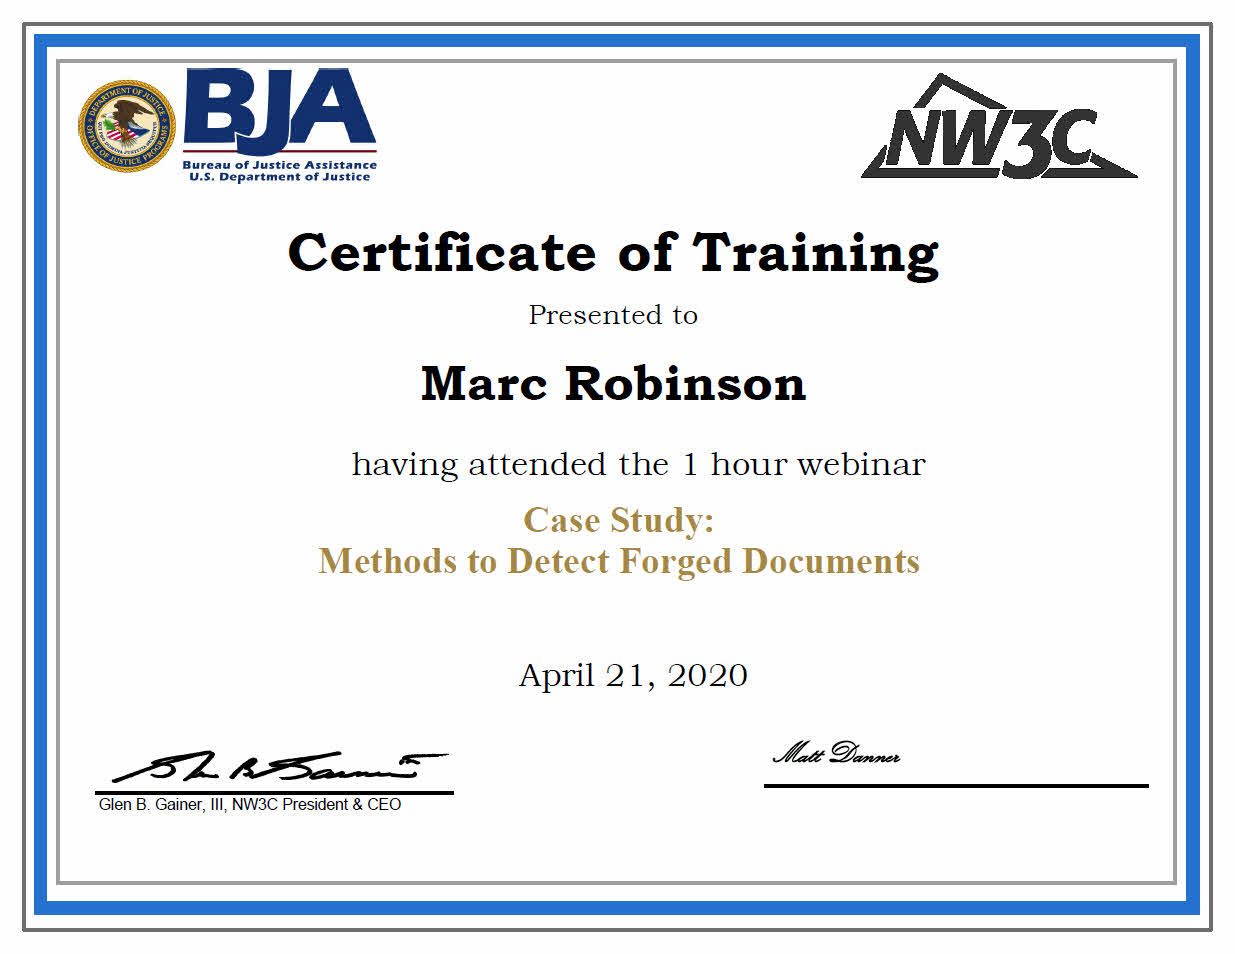 US Department of Justice Training Certificate in Methods to Detect Forged Documents for Marc Robinson